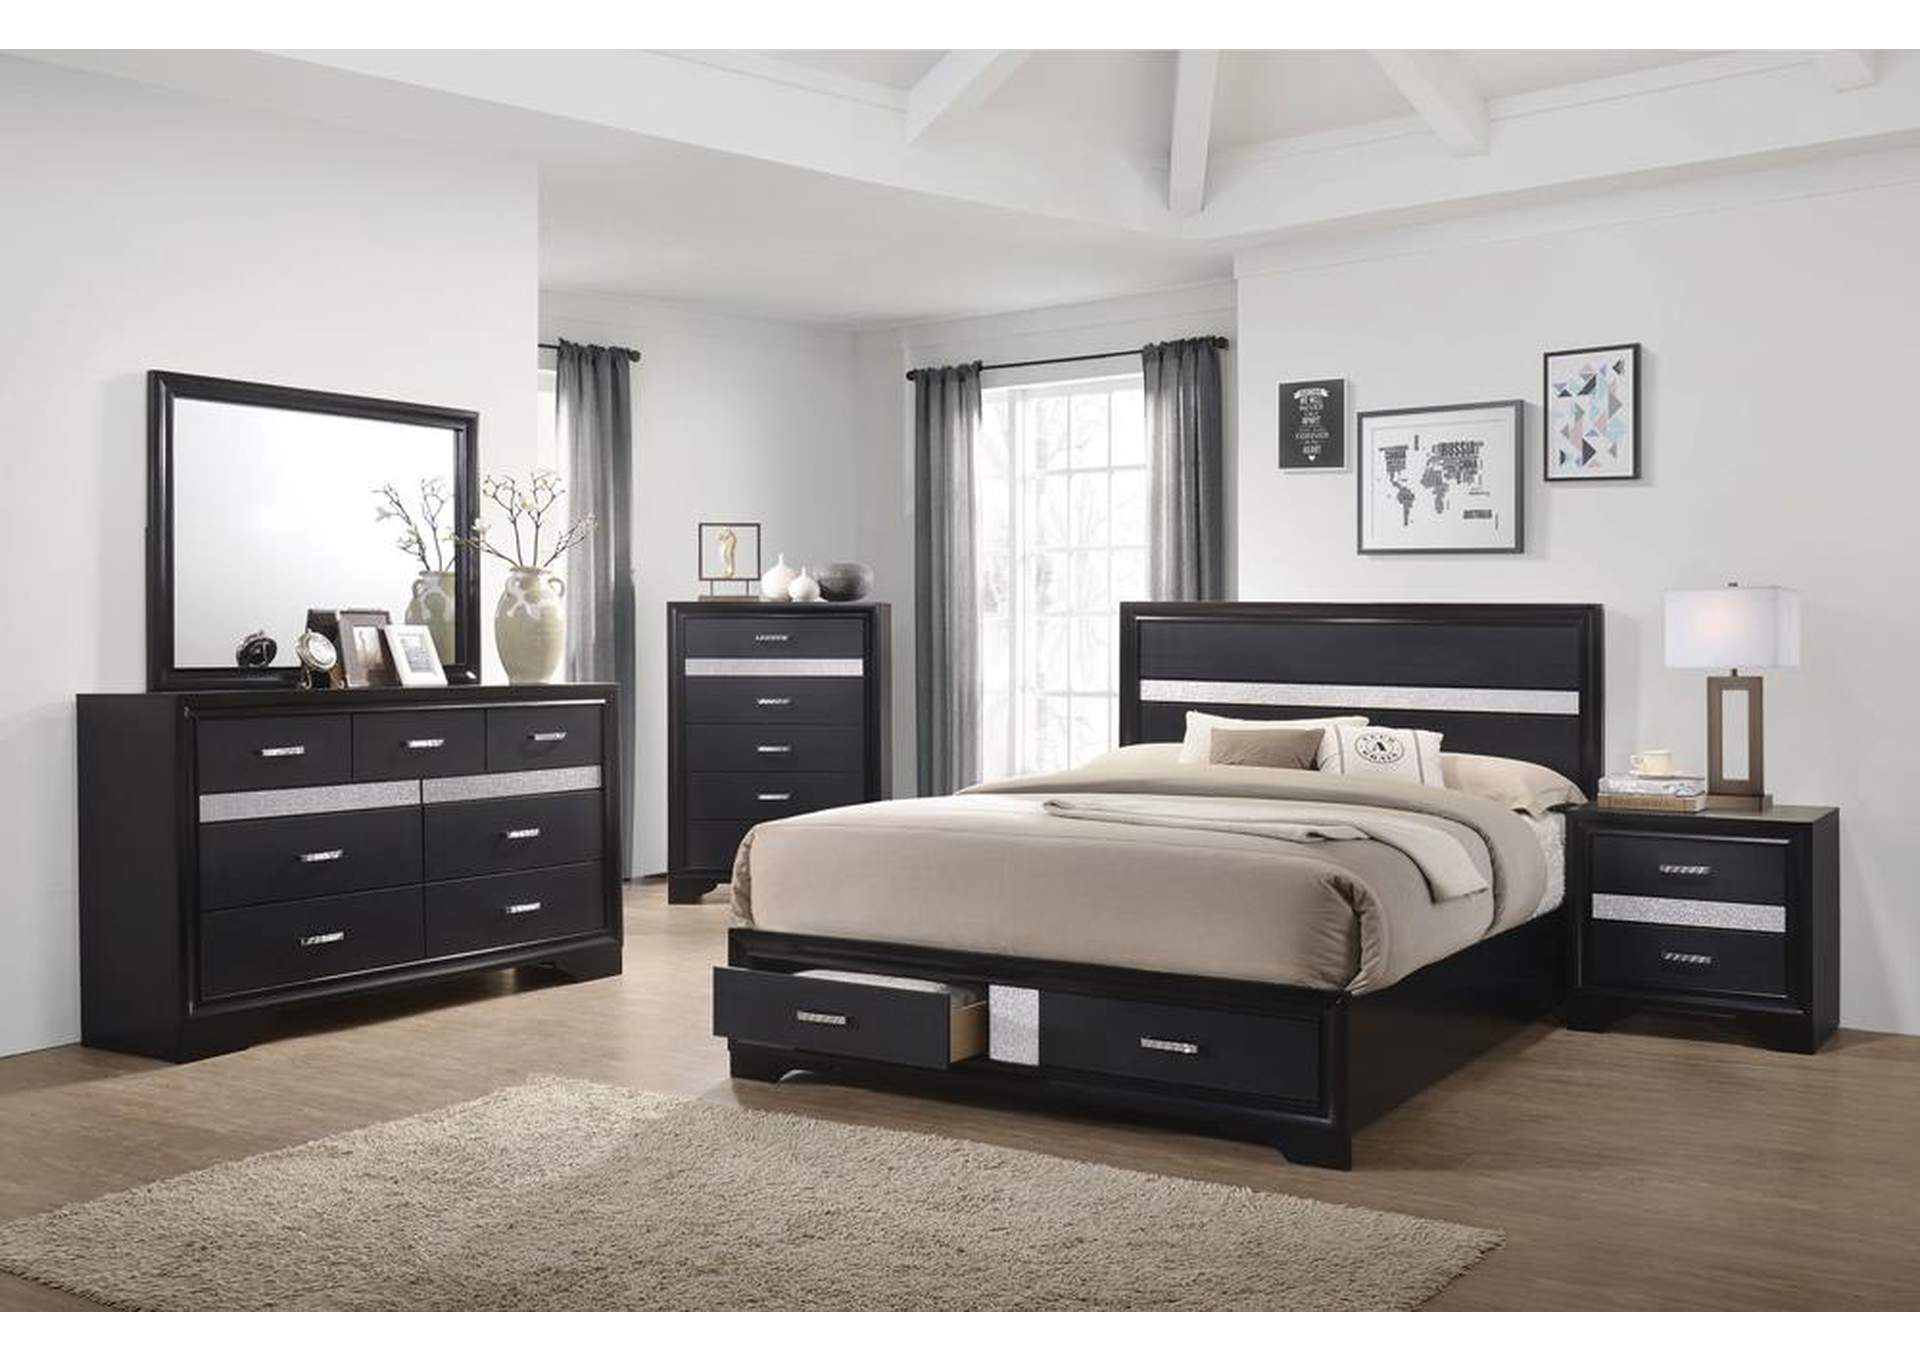 Eerie Black Miranda Contemporary Black Queen Bed,Coaster Furniture